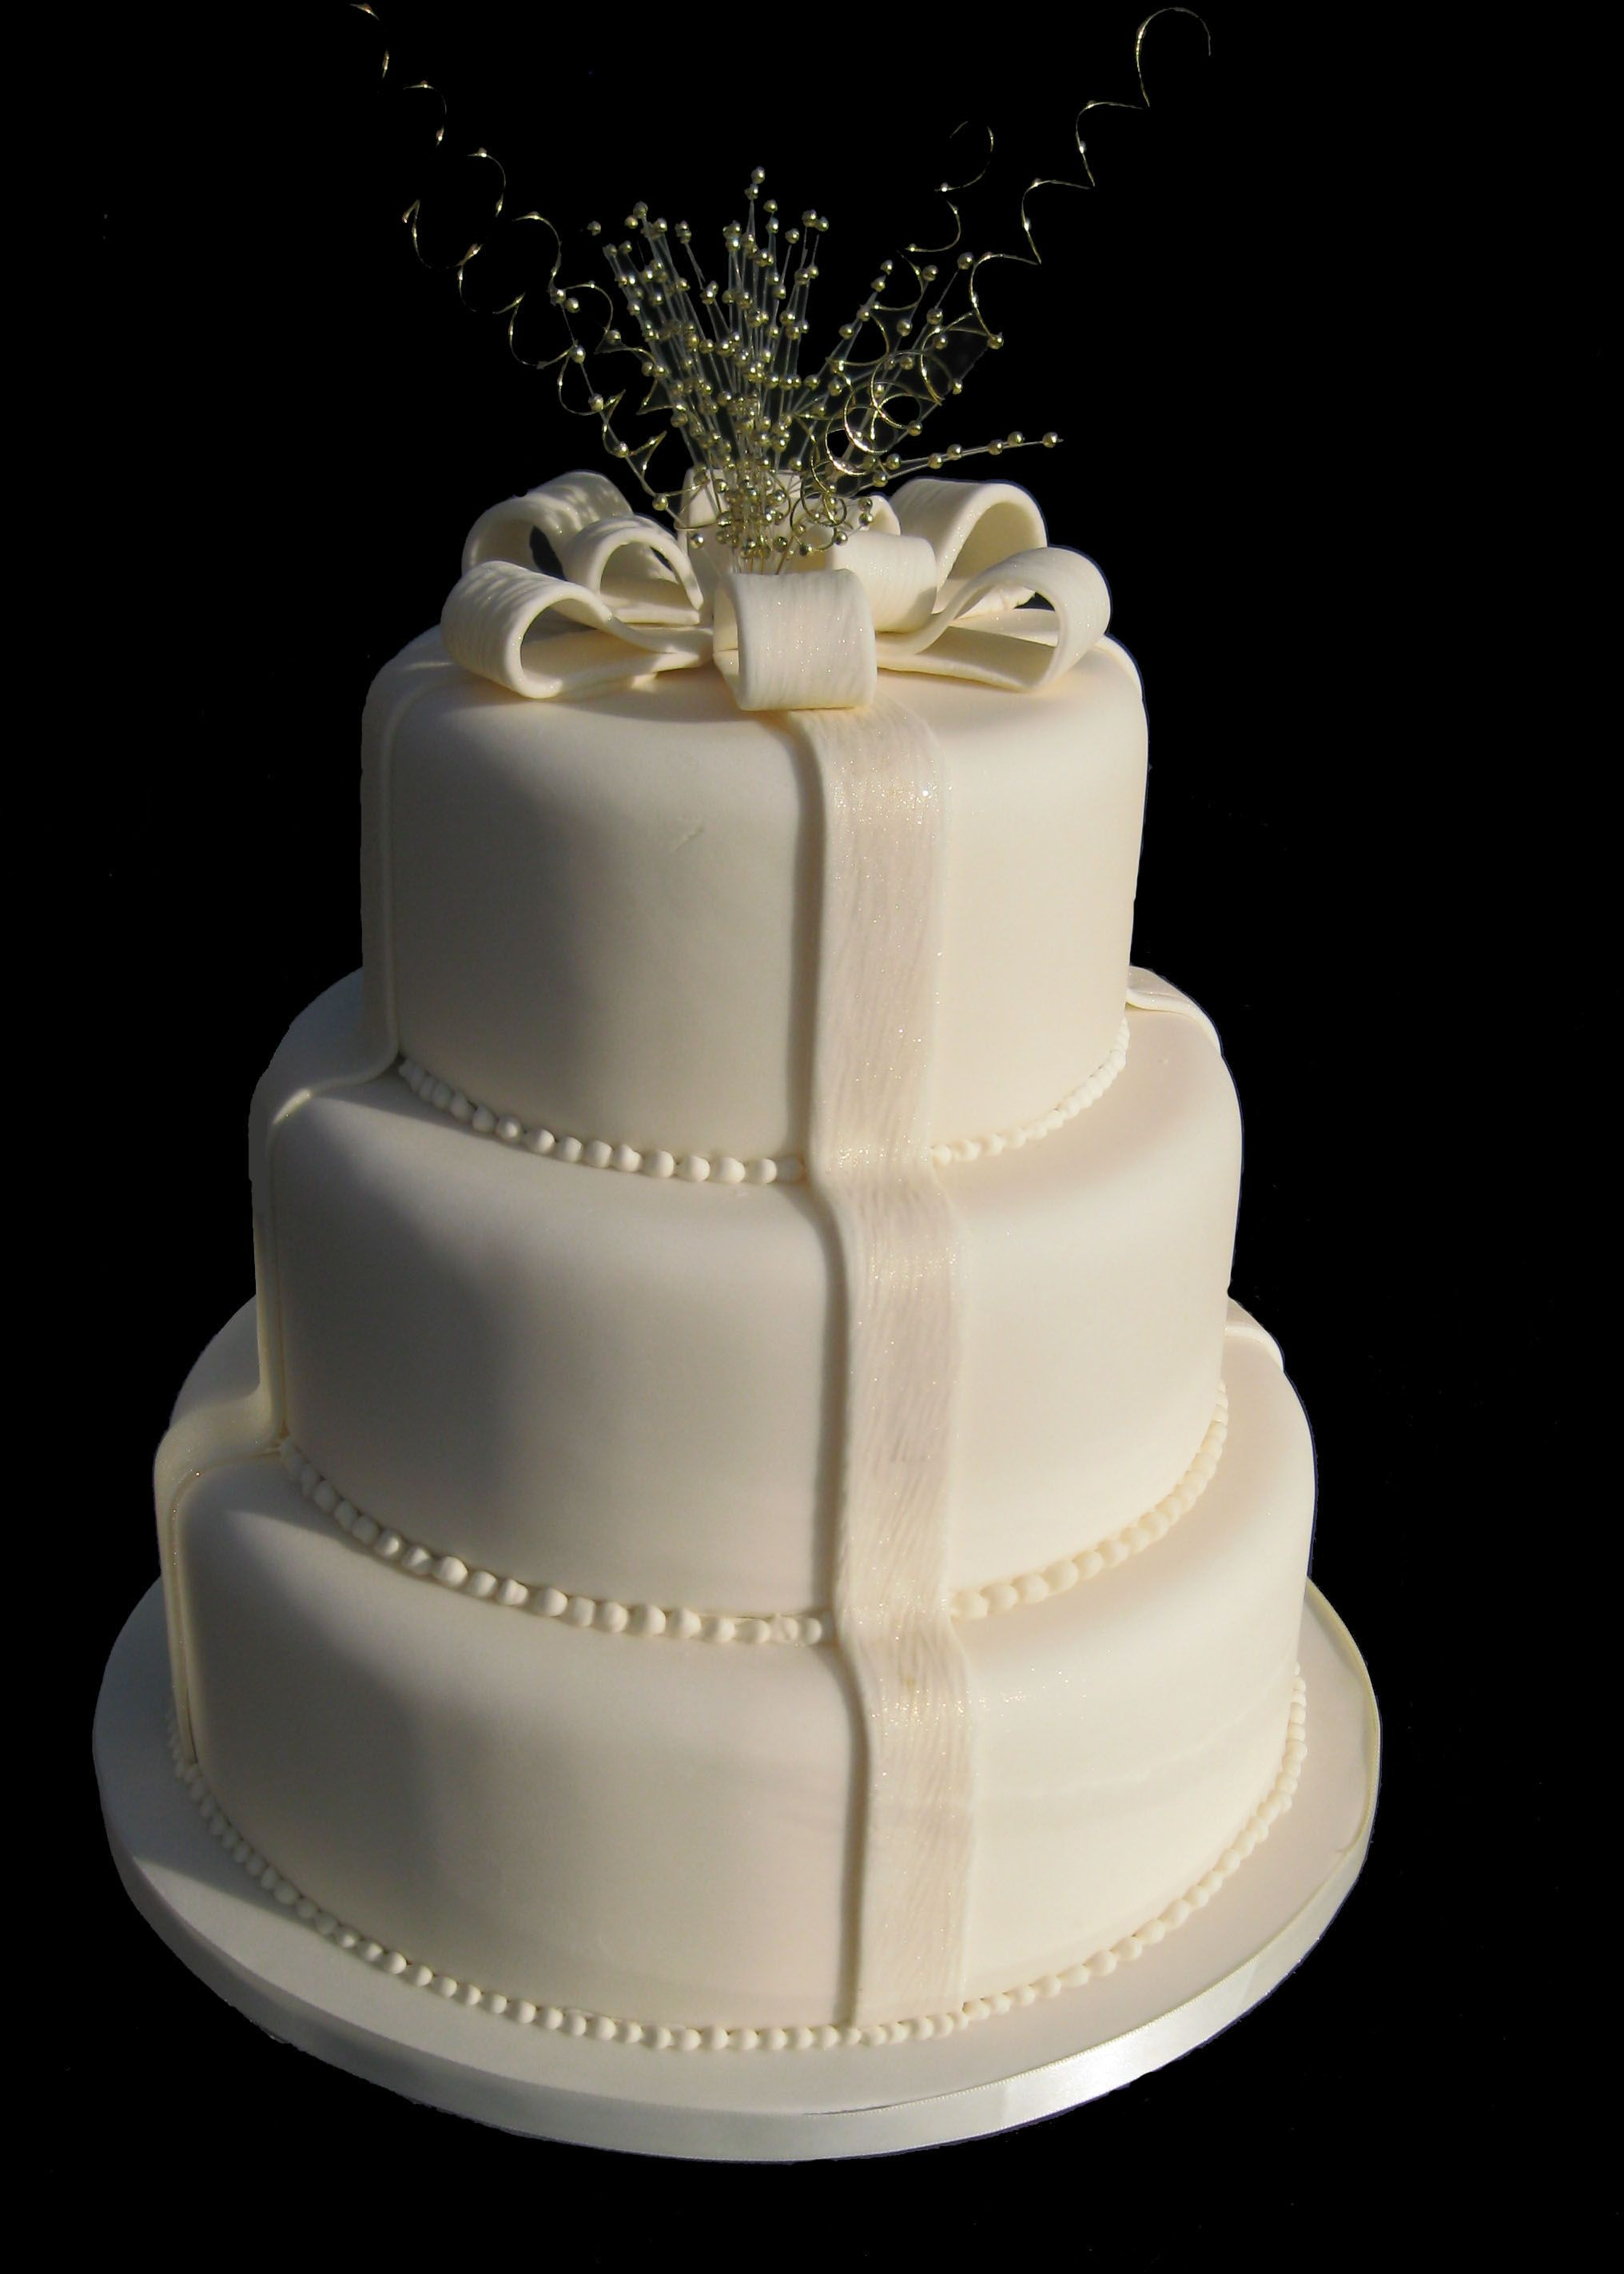 3 Tier Wedding Cakes Cake Designs